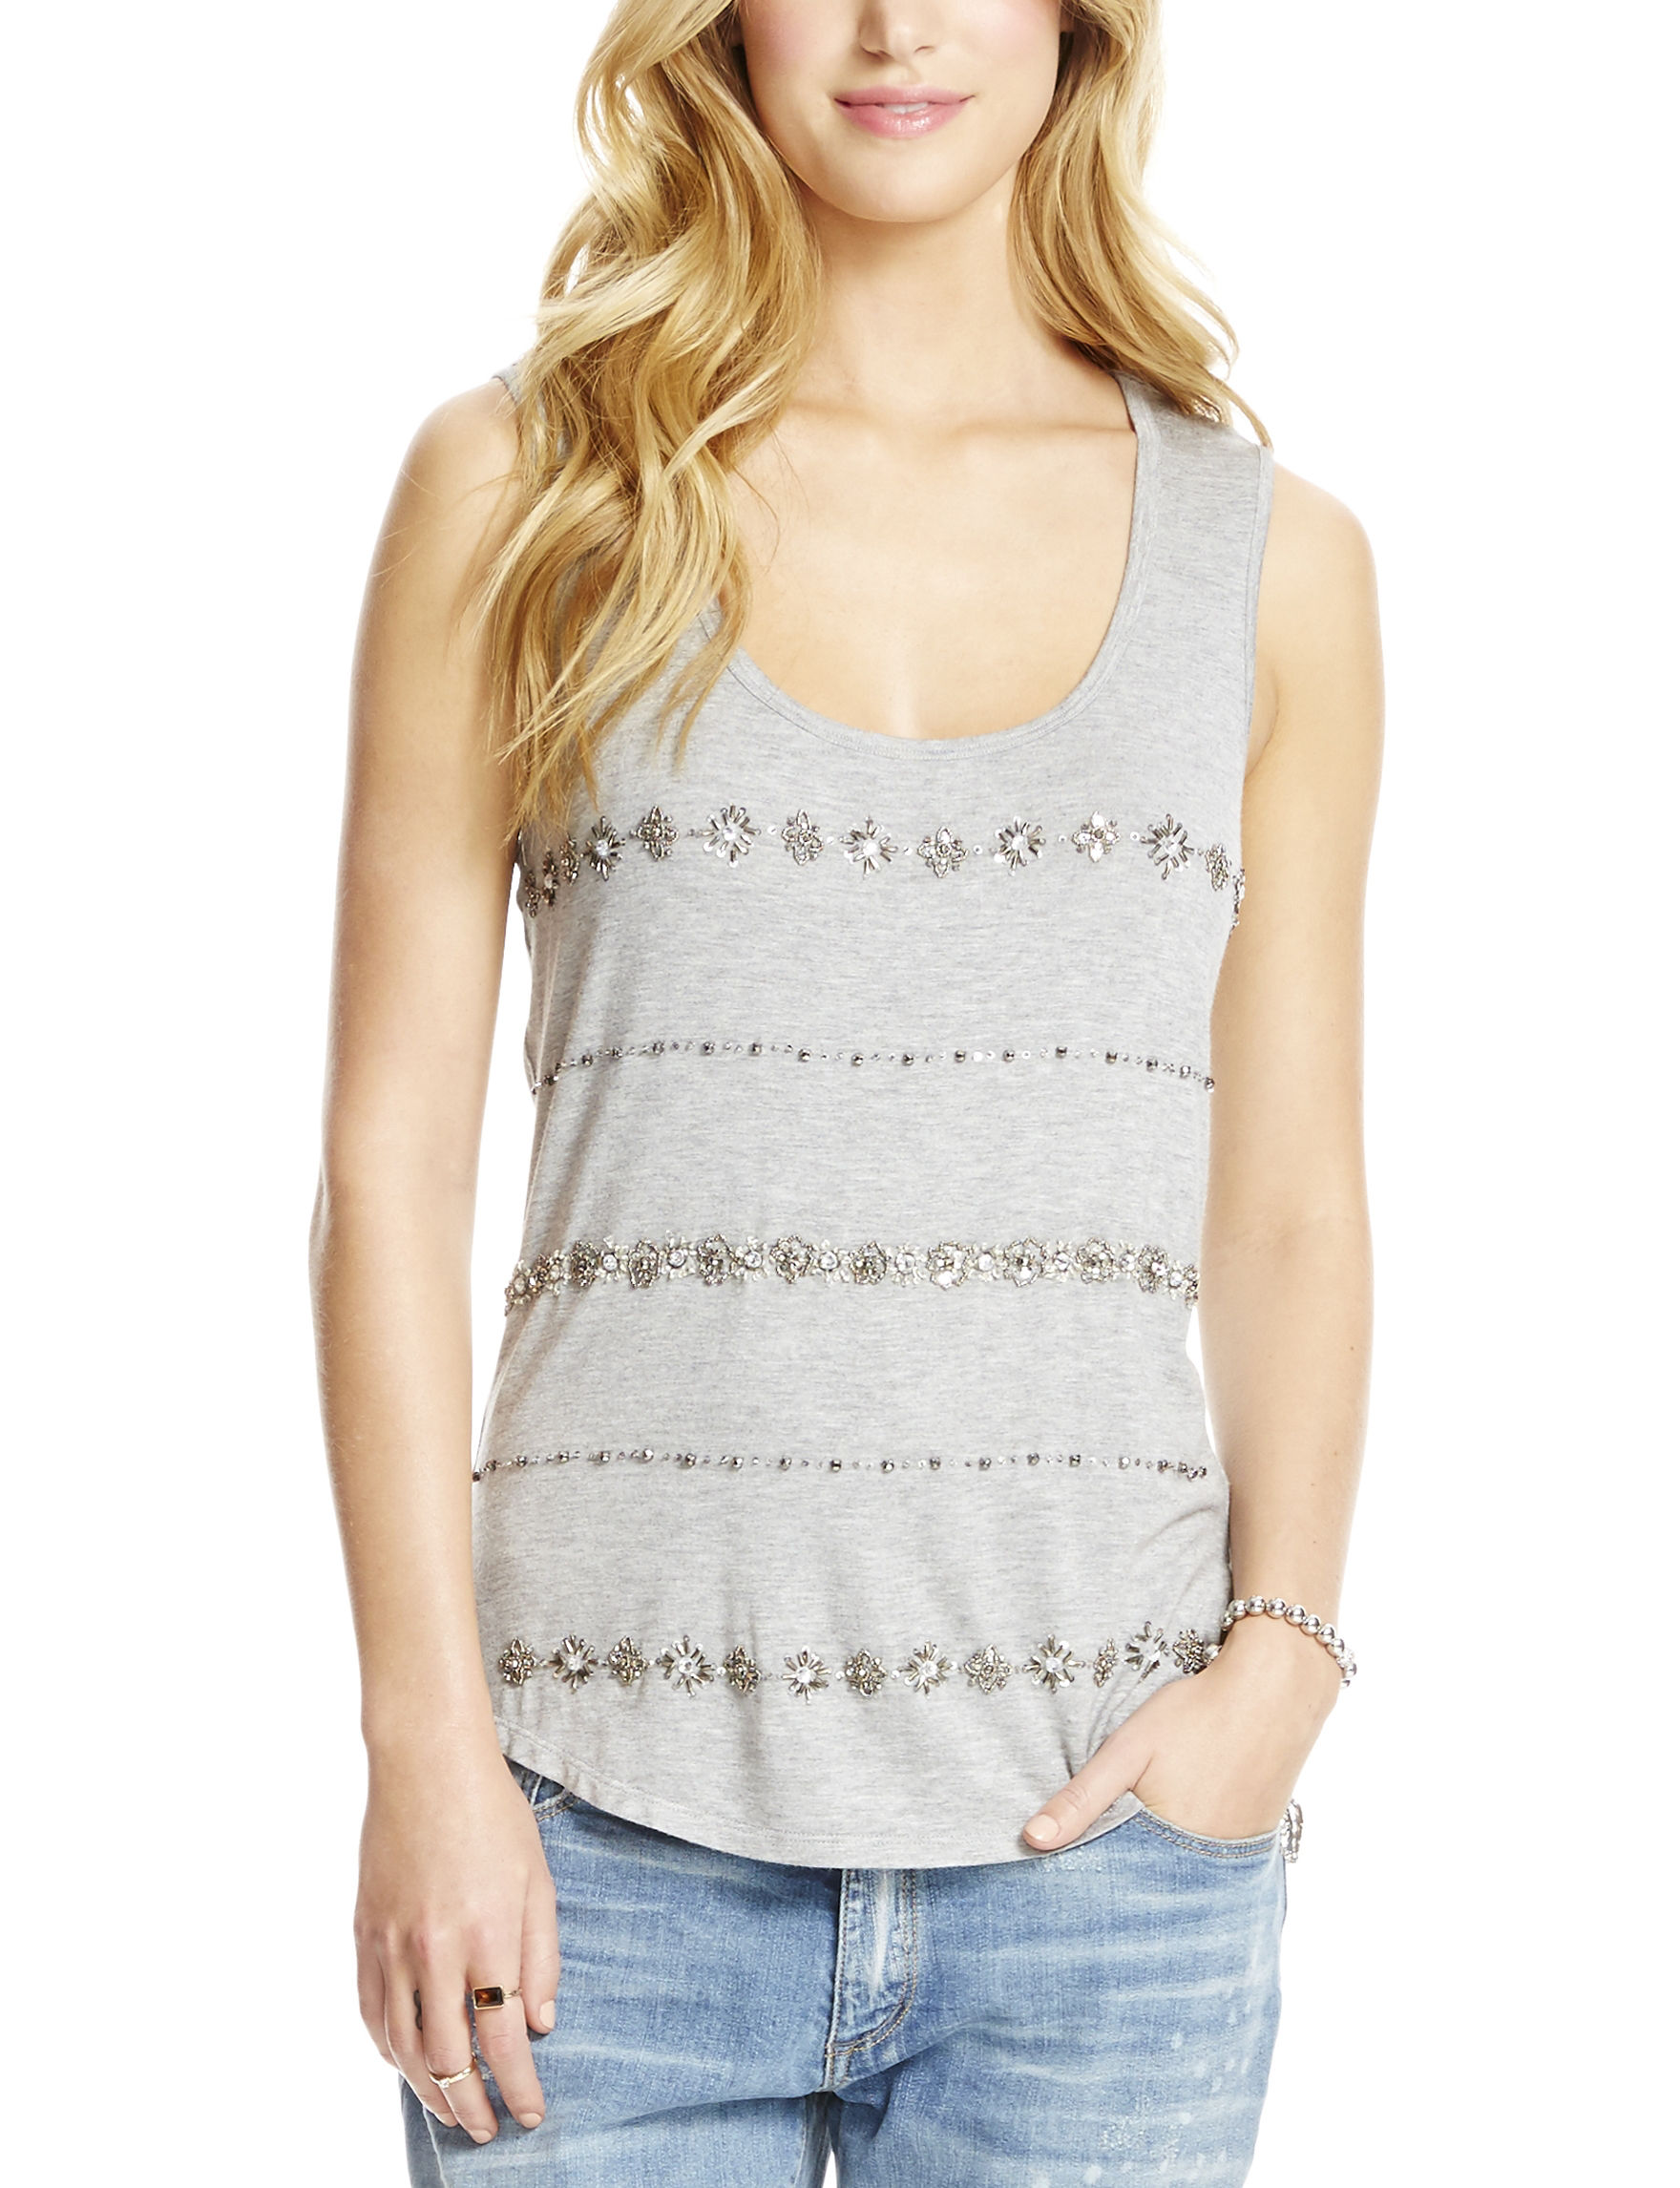 Jessica Simpson Heather Grey Tees & Tanks